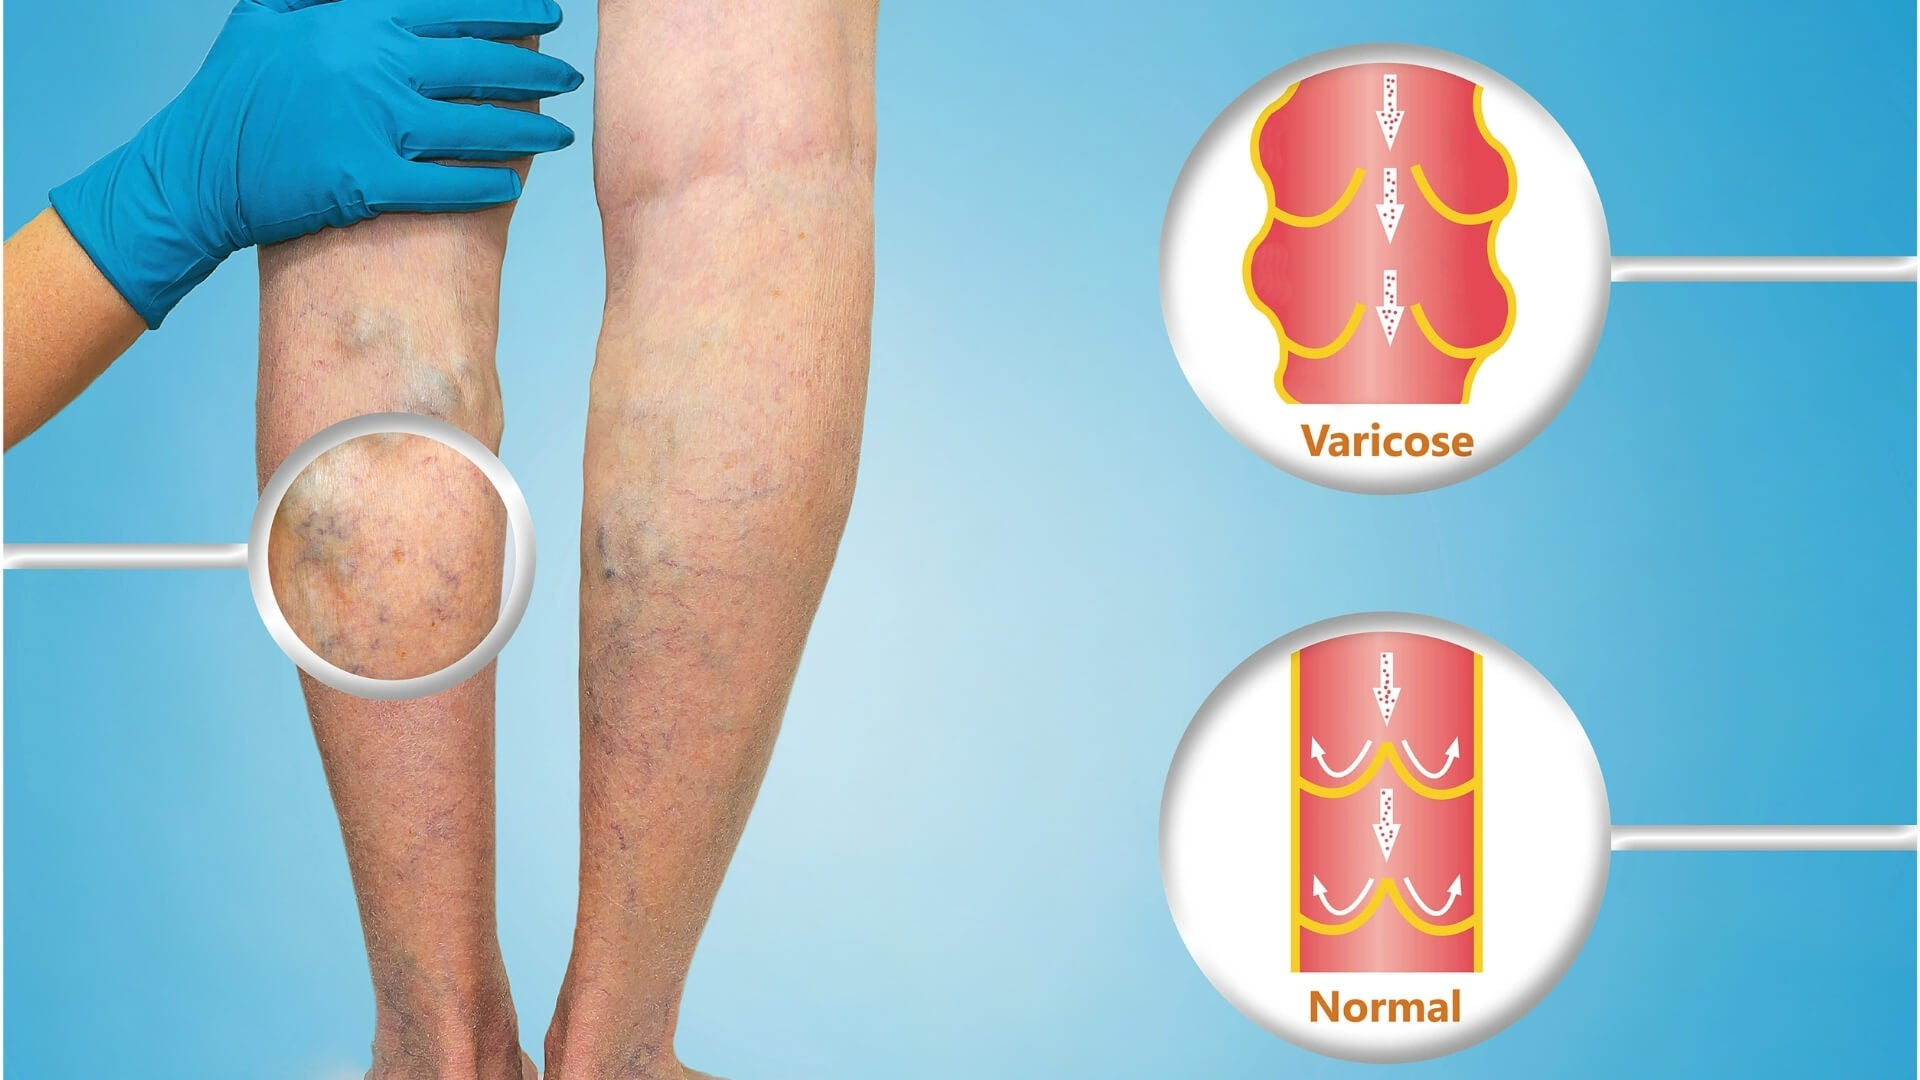 HOW TO PREVENT VARICOSE VEINS?